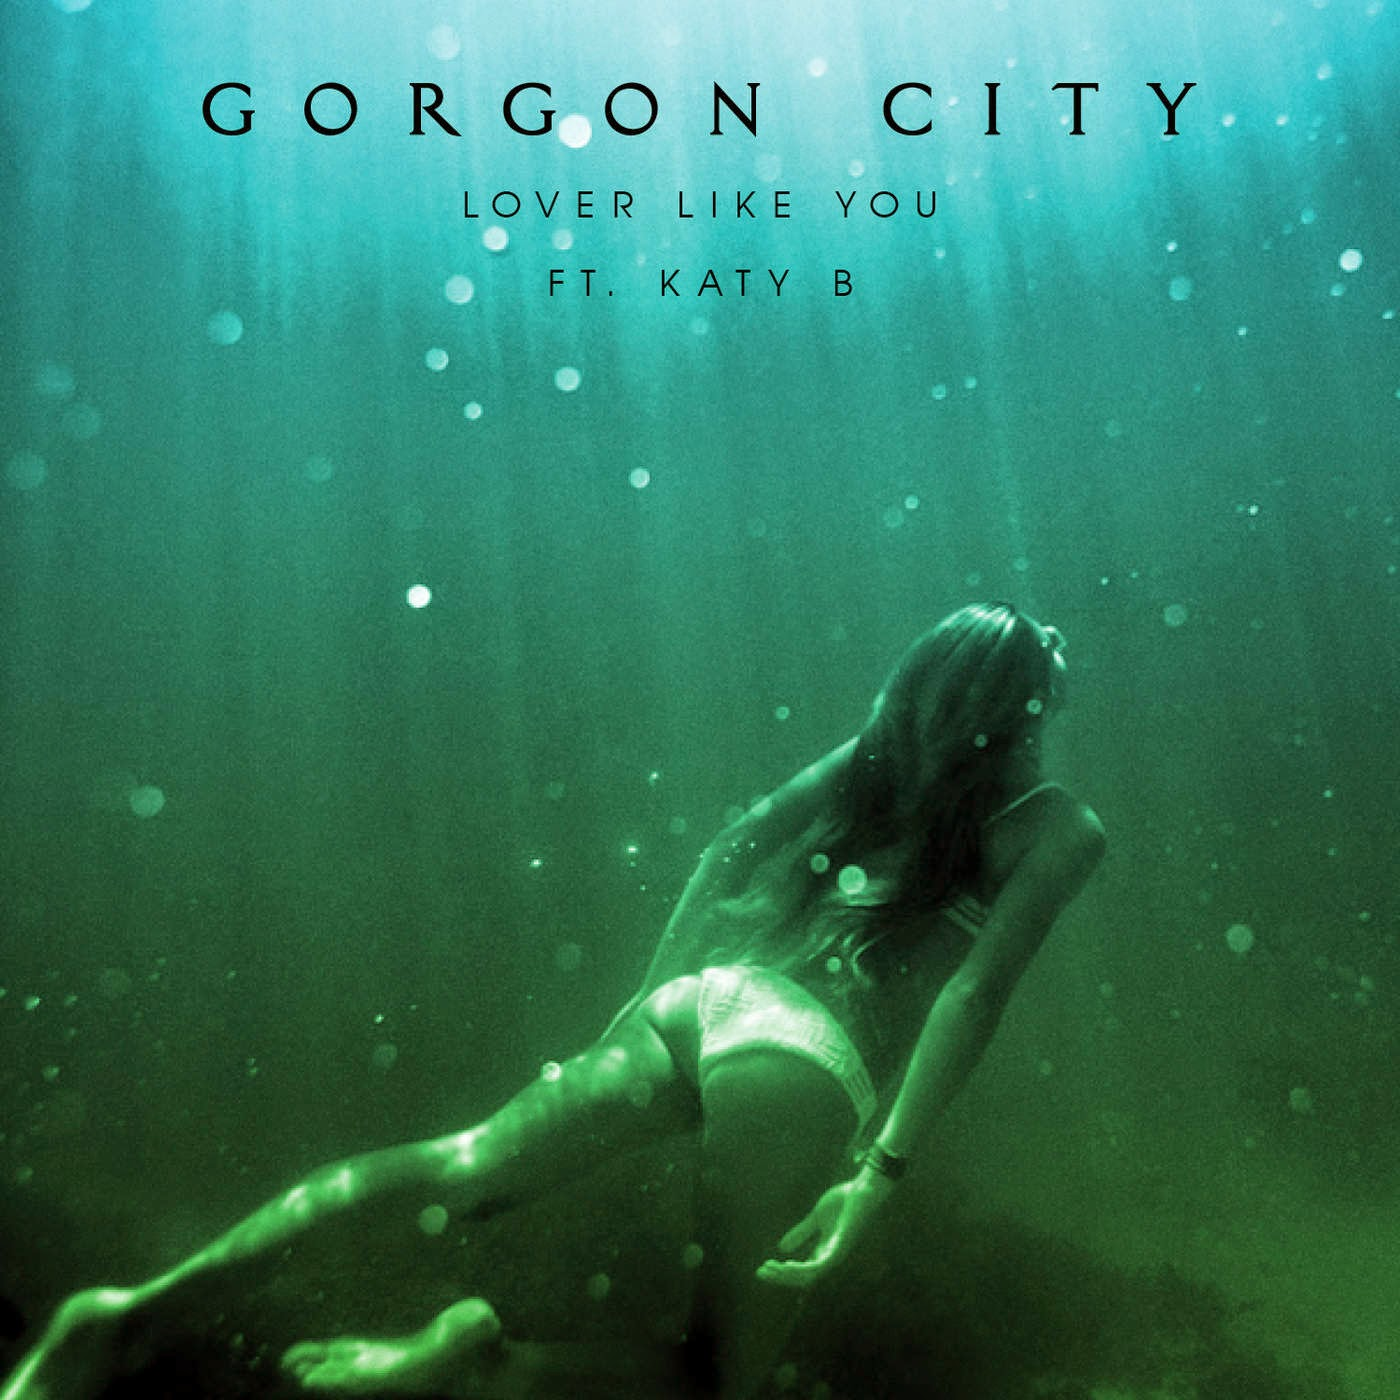 Gorgon City - Lover Like You (feat. Katy B) - Single Cover